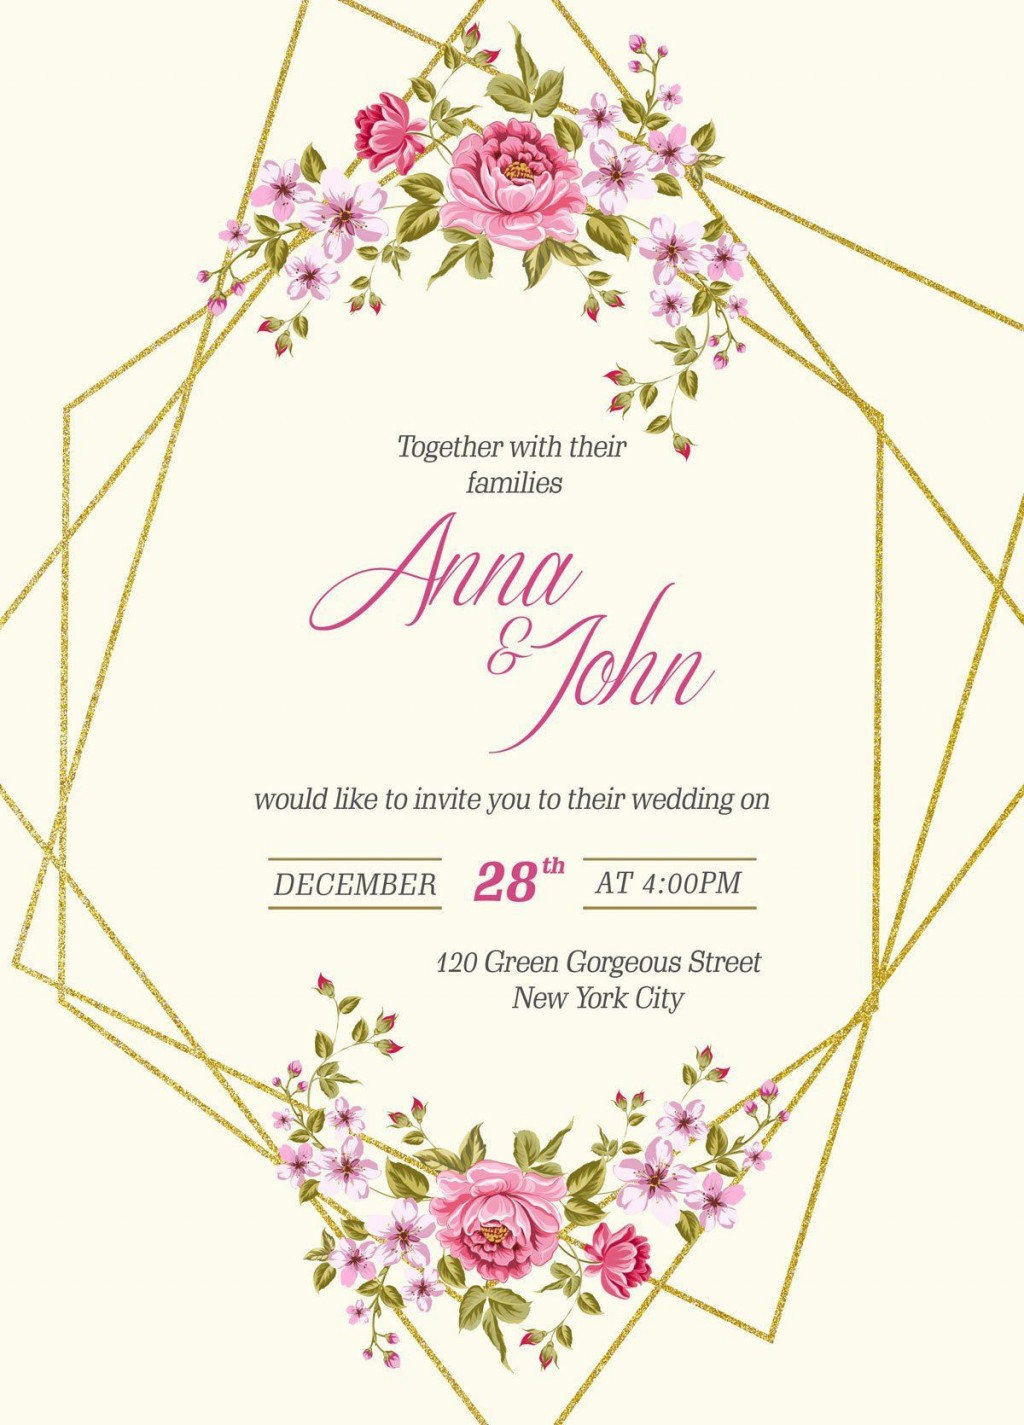 003 Magnificent Free Wedding Invitation Template Printable Picture  For Microsoft Word MacLarge